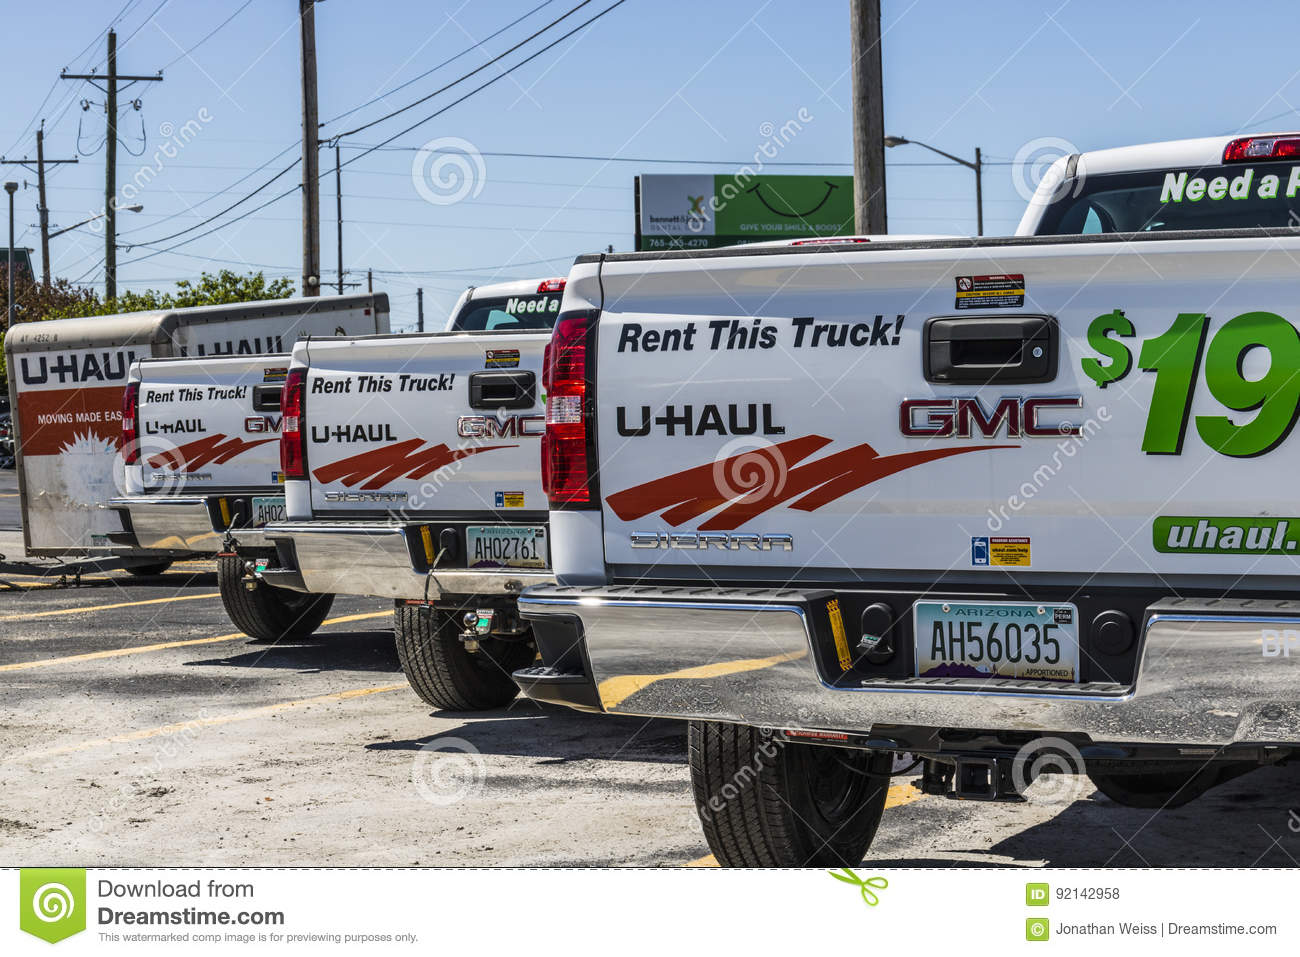 Truck Rentals Near Me >> Uhaul Location Near Me Best Car News 2019 2020 By Vashonintuitivearts